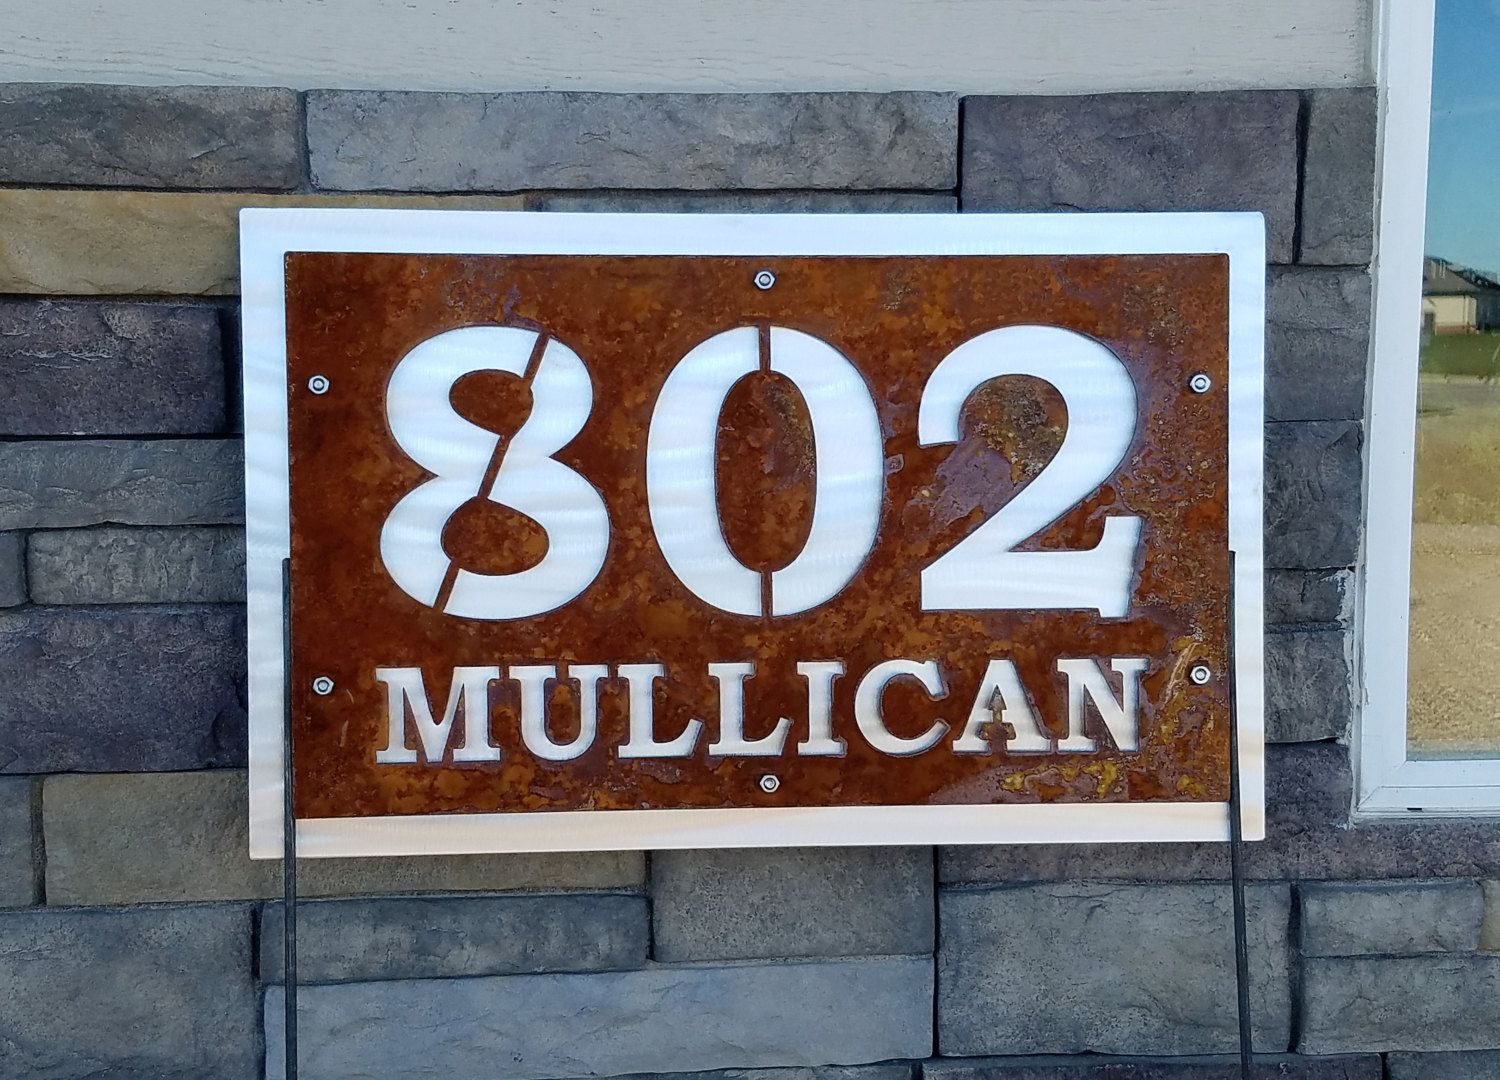 Rustic Metal Address And Street Number House And Street Number On